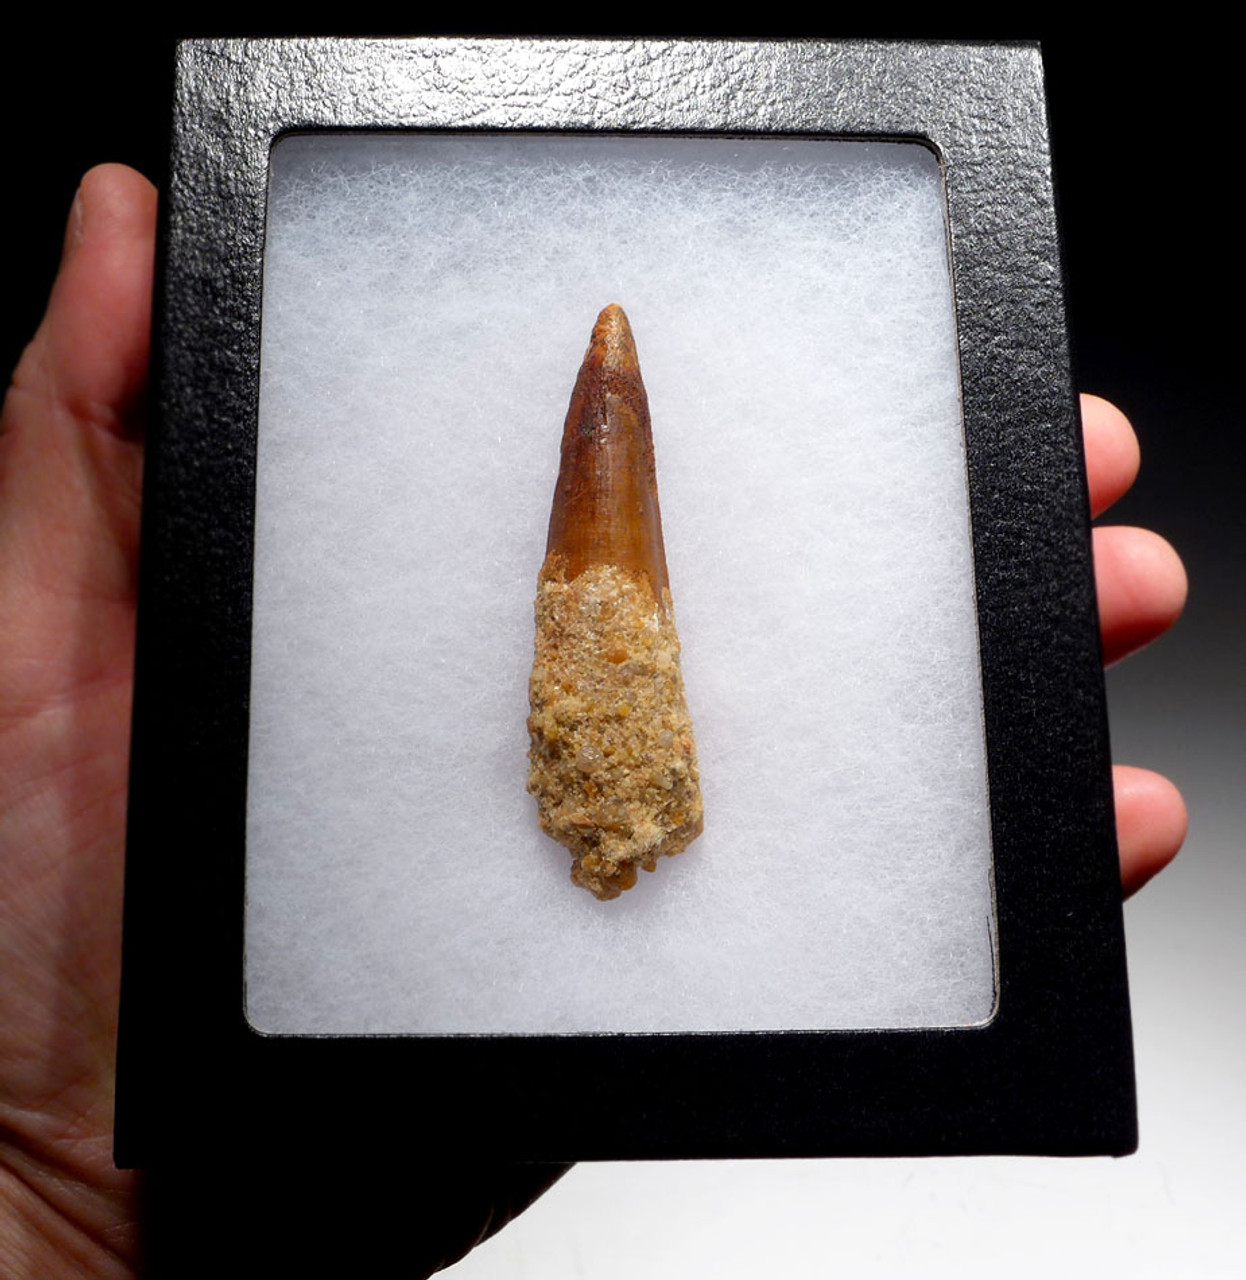 2.75 INCH INEXPENSIVE SPINOSAURUS DINOSAUR FOSSIL TOOTH WITH SHARP TIP *DT5-422